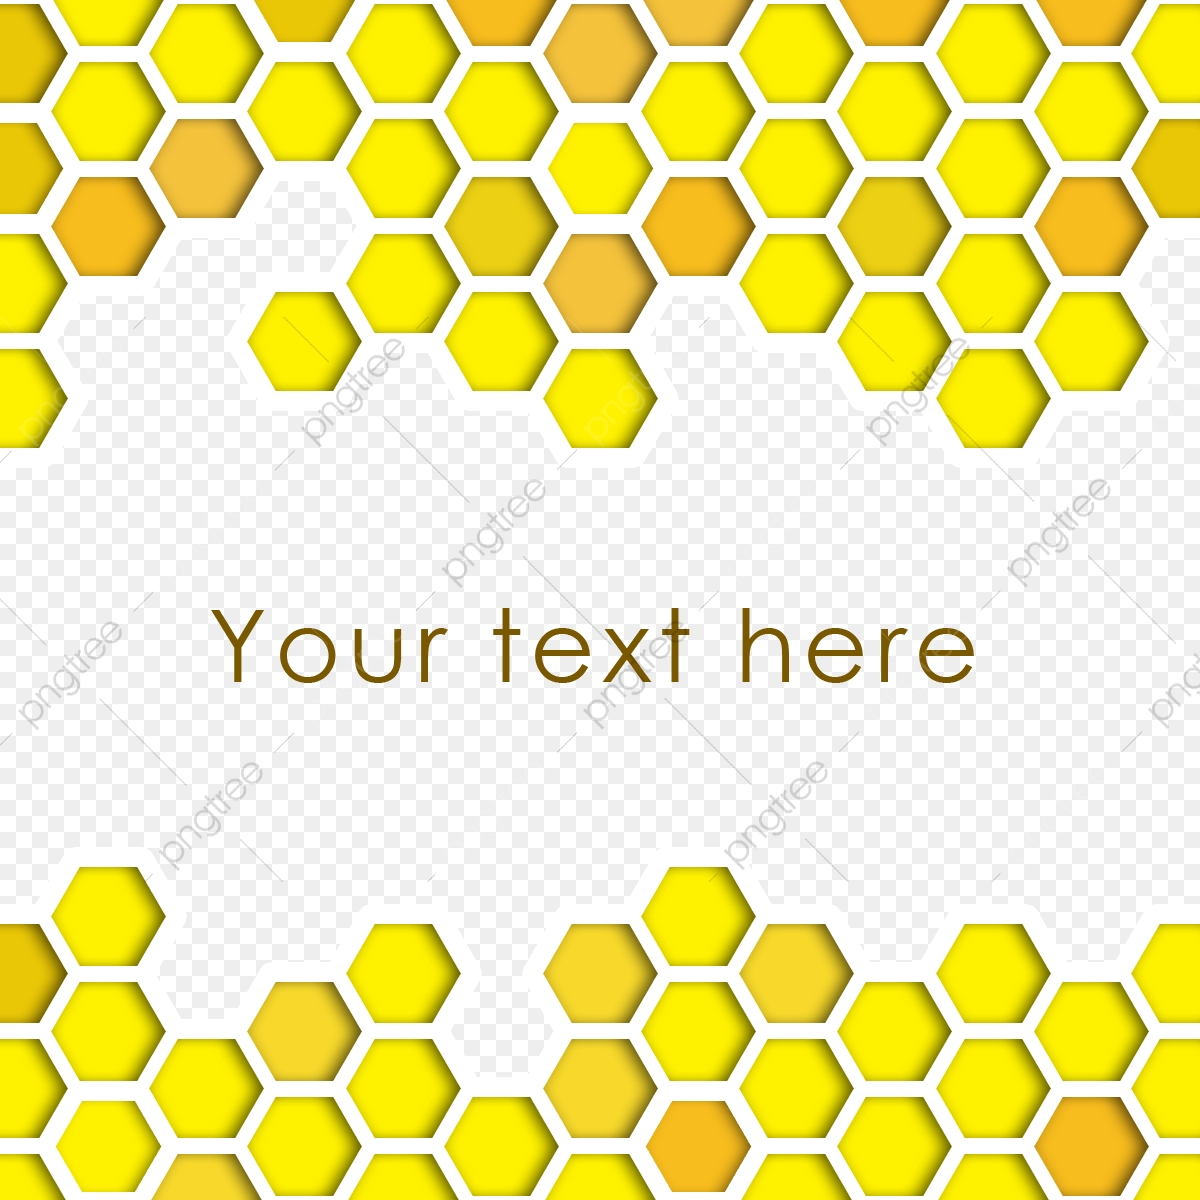 Bee hive background with. Honeycomb clipart geometric